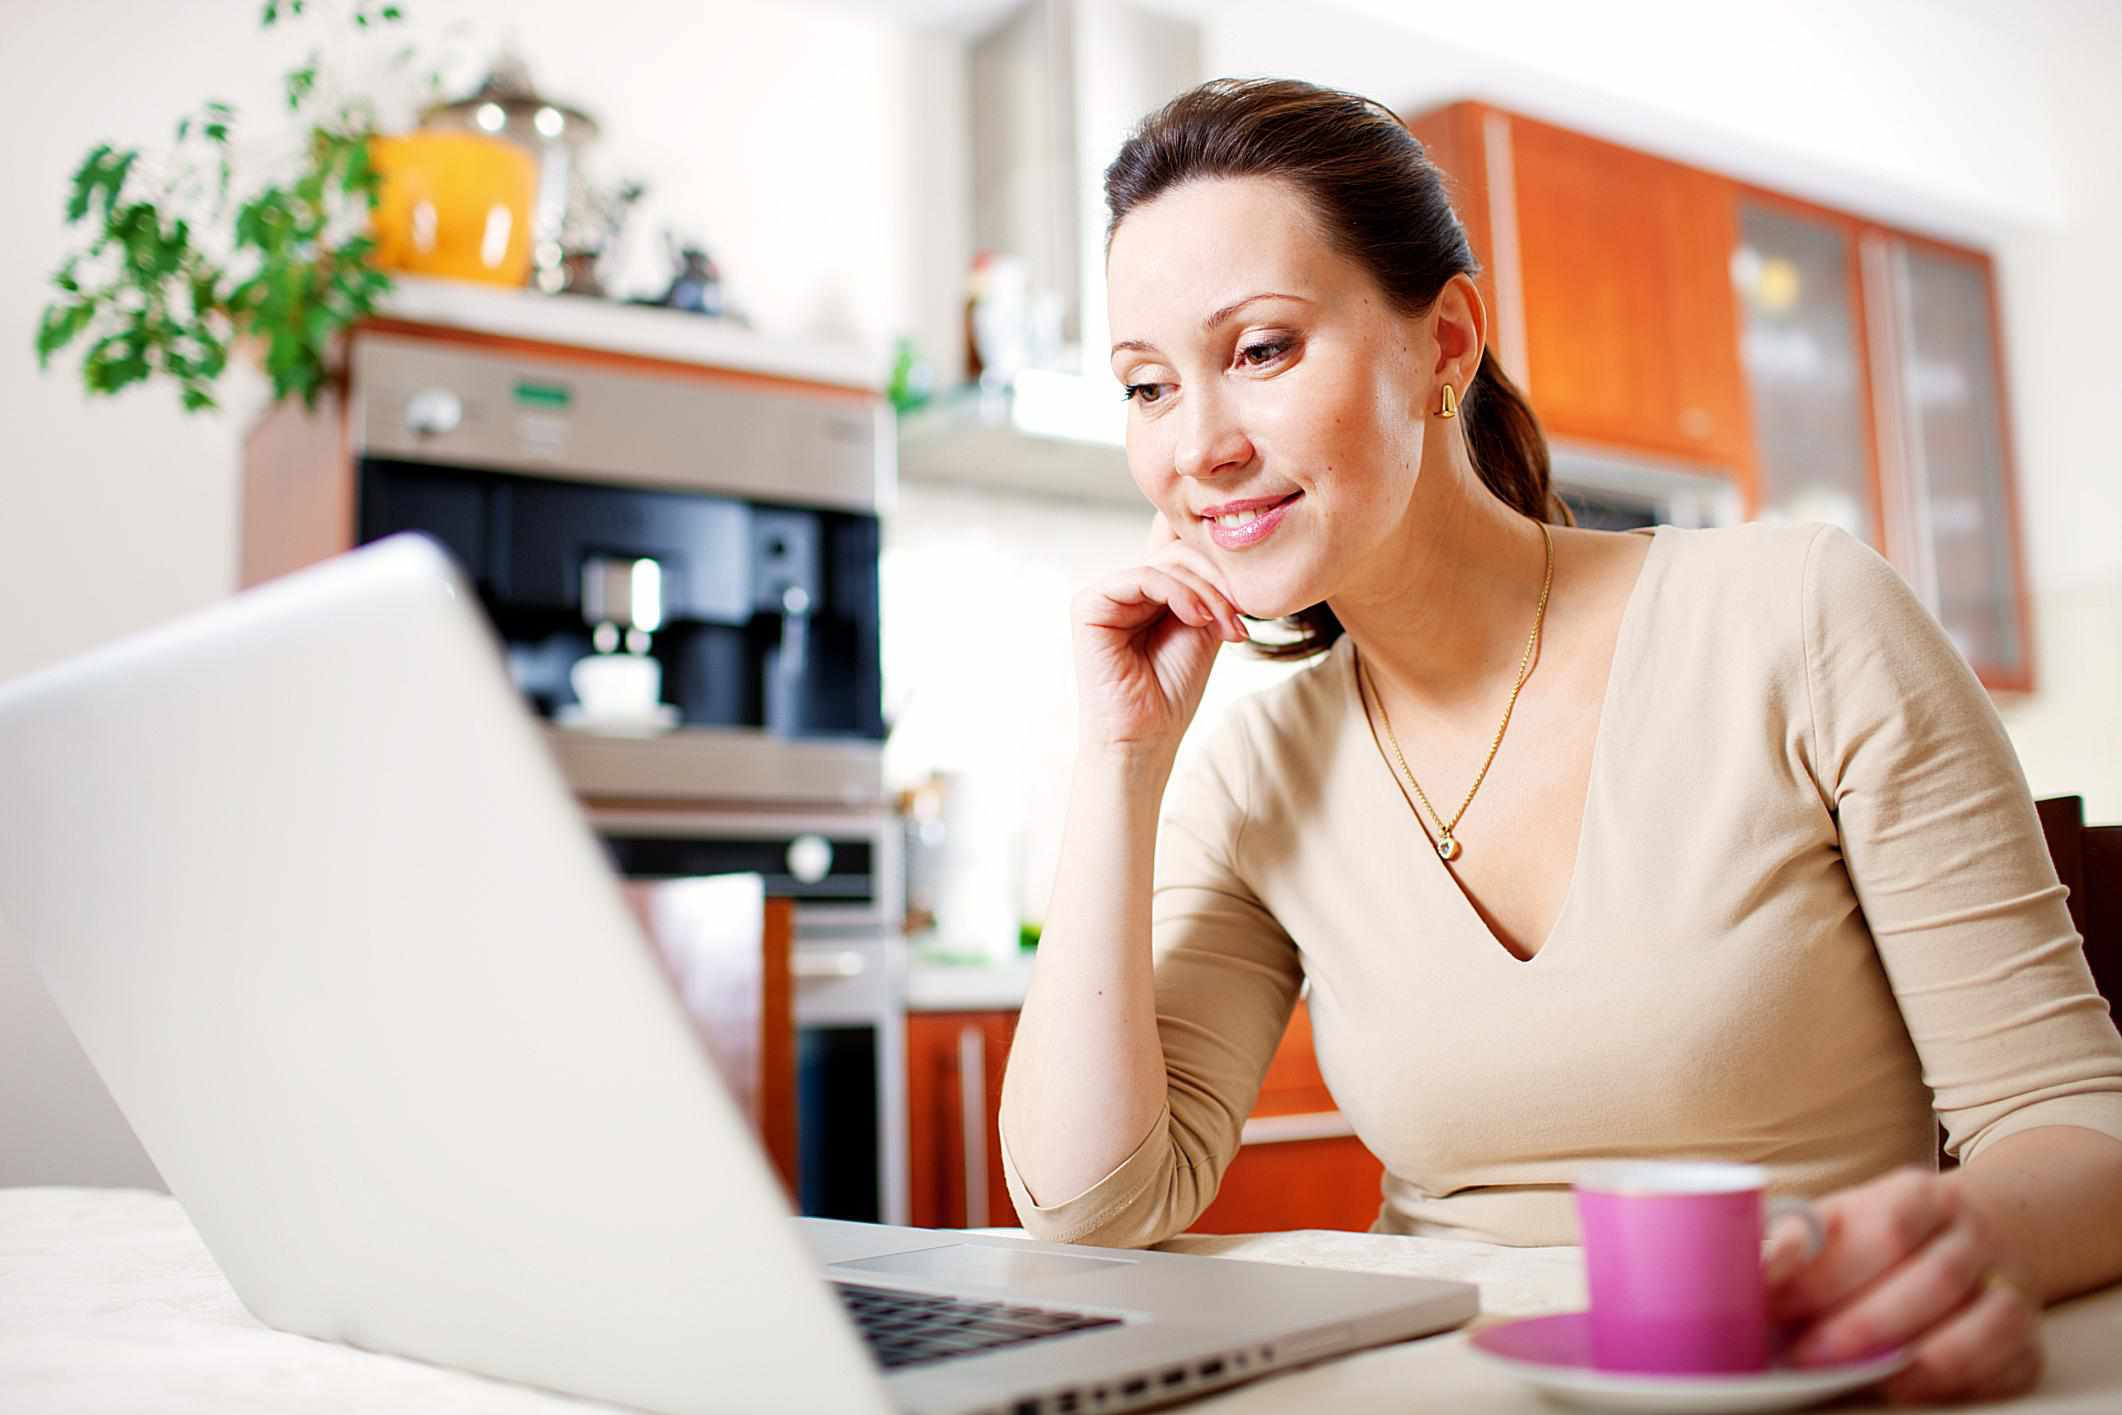 Woman looking at laptop on desk.